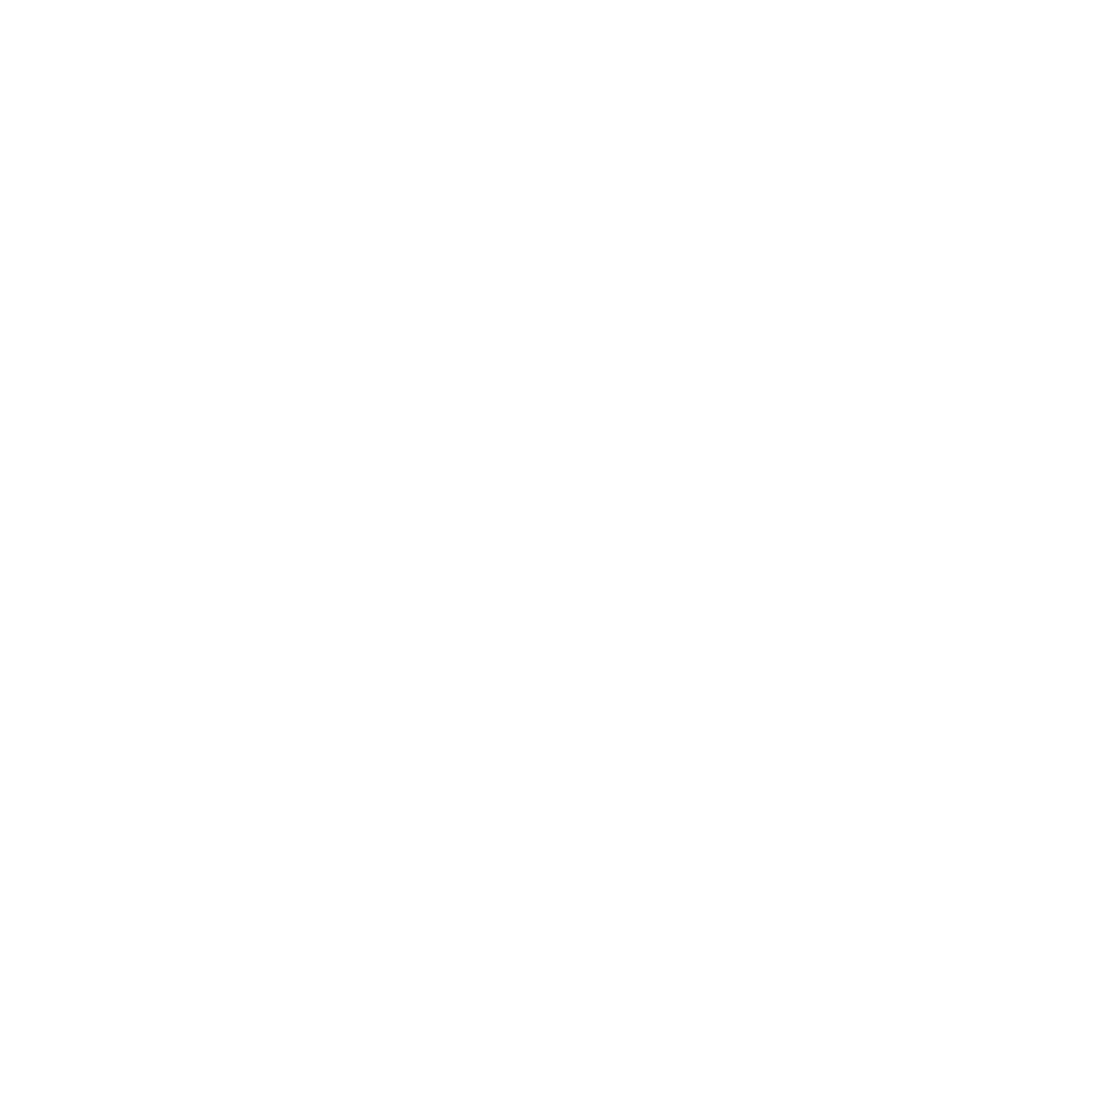 Style and Blooms